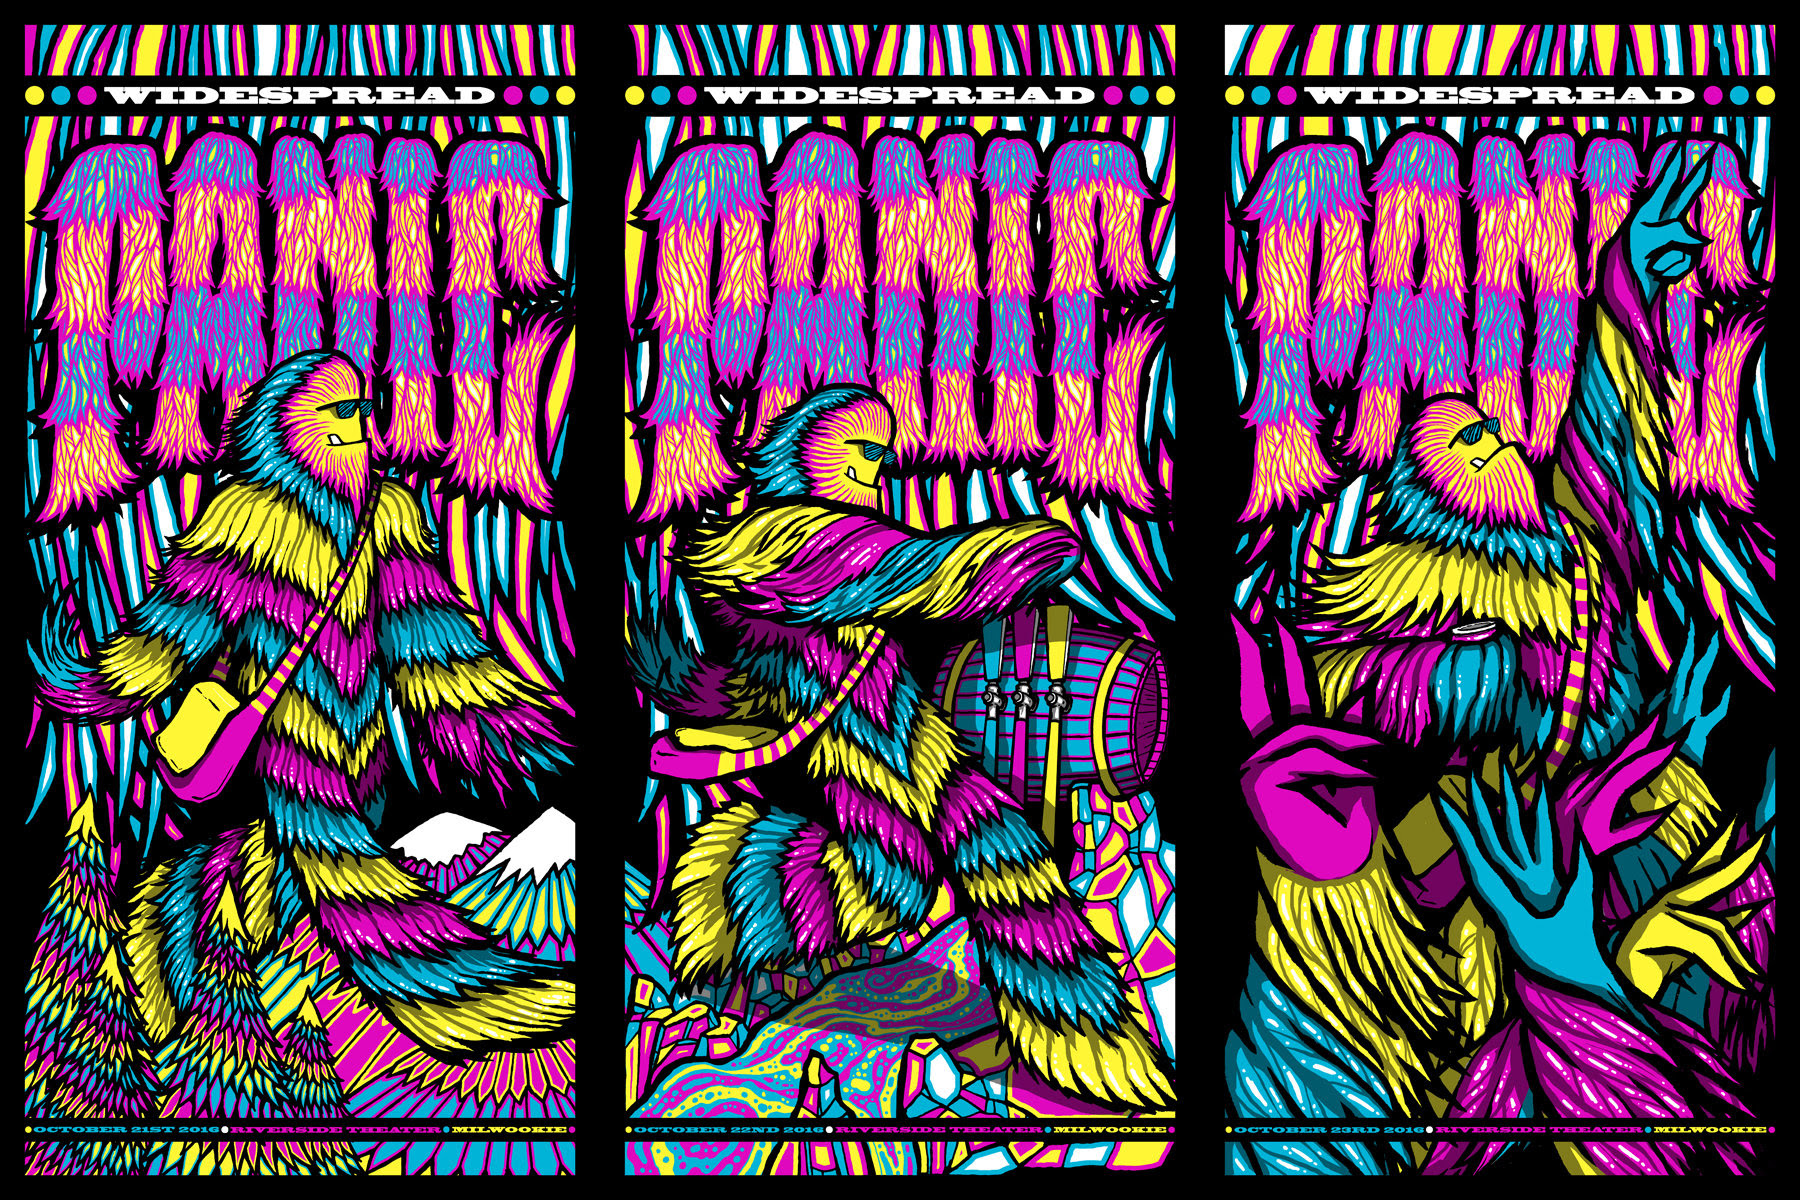 """Widespread Panic - Milwaukee, WI 2016"" by Brad Klausen.  36"" x 24"" 5-color Screenprint.  Ed of 100 S/N.  $90"